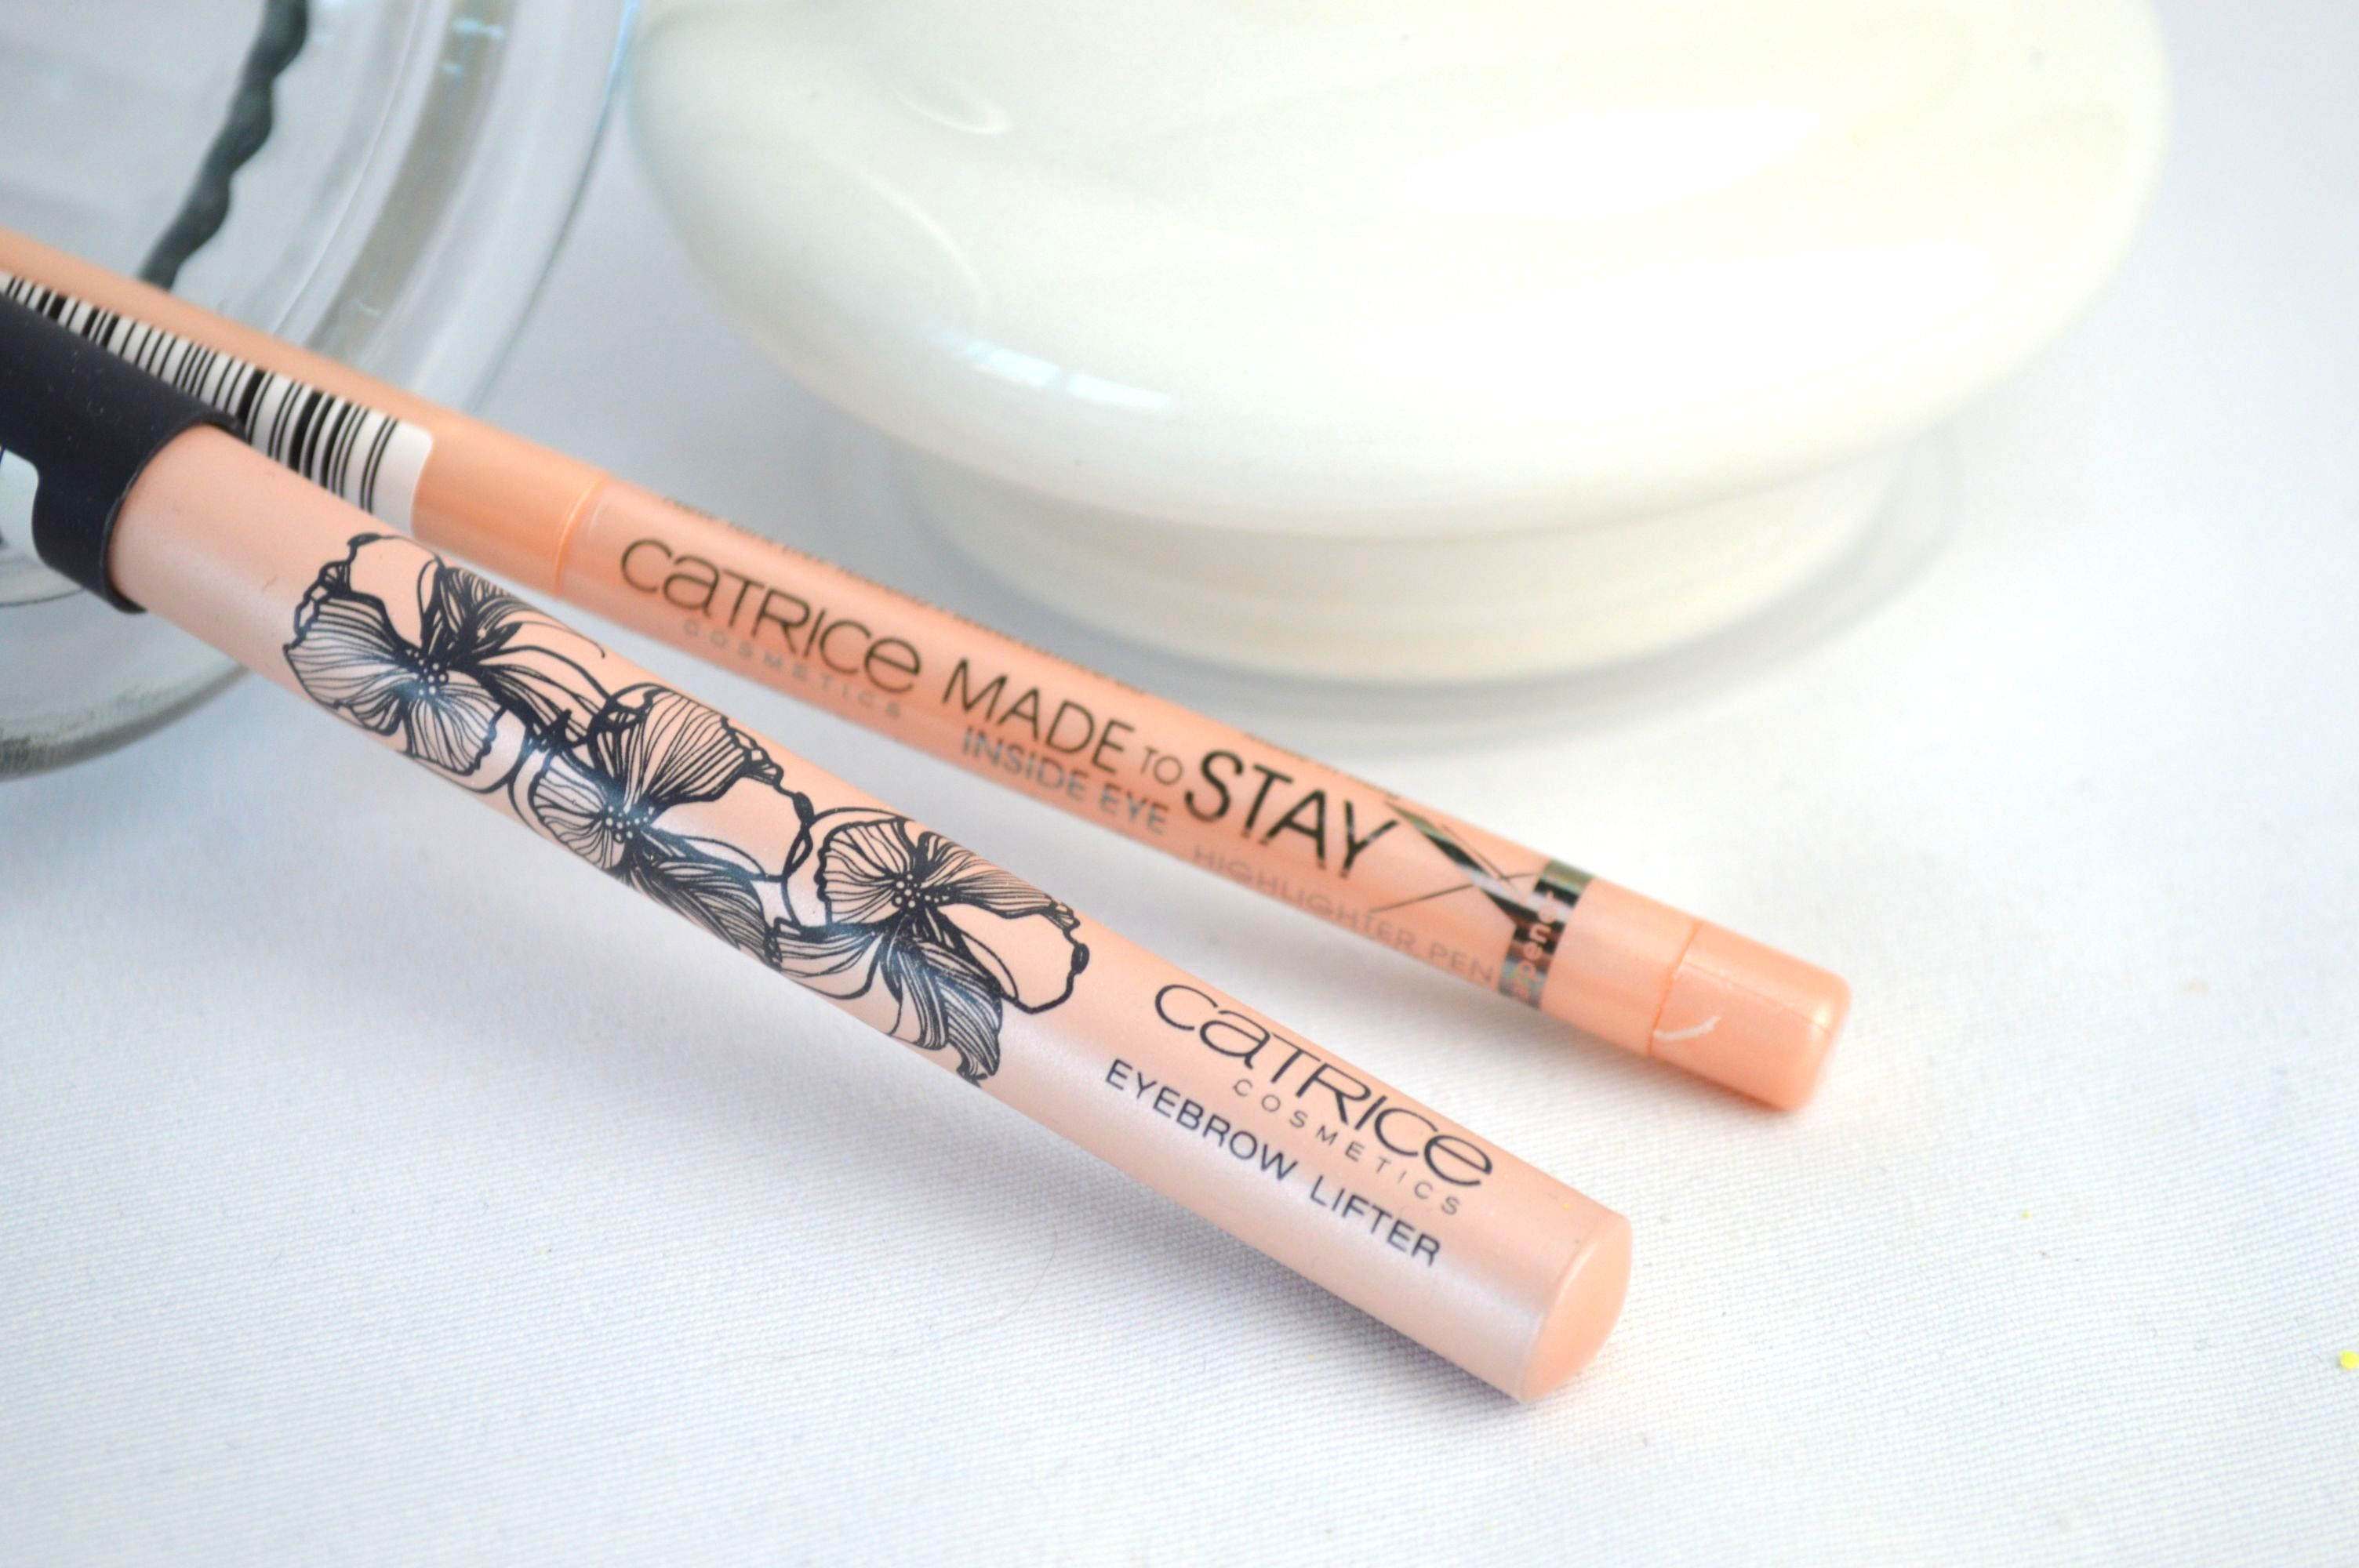 Catrice_eyebrow_lifter_in_eye_highlighter